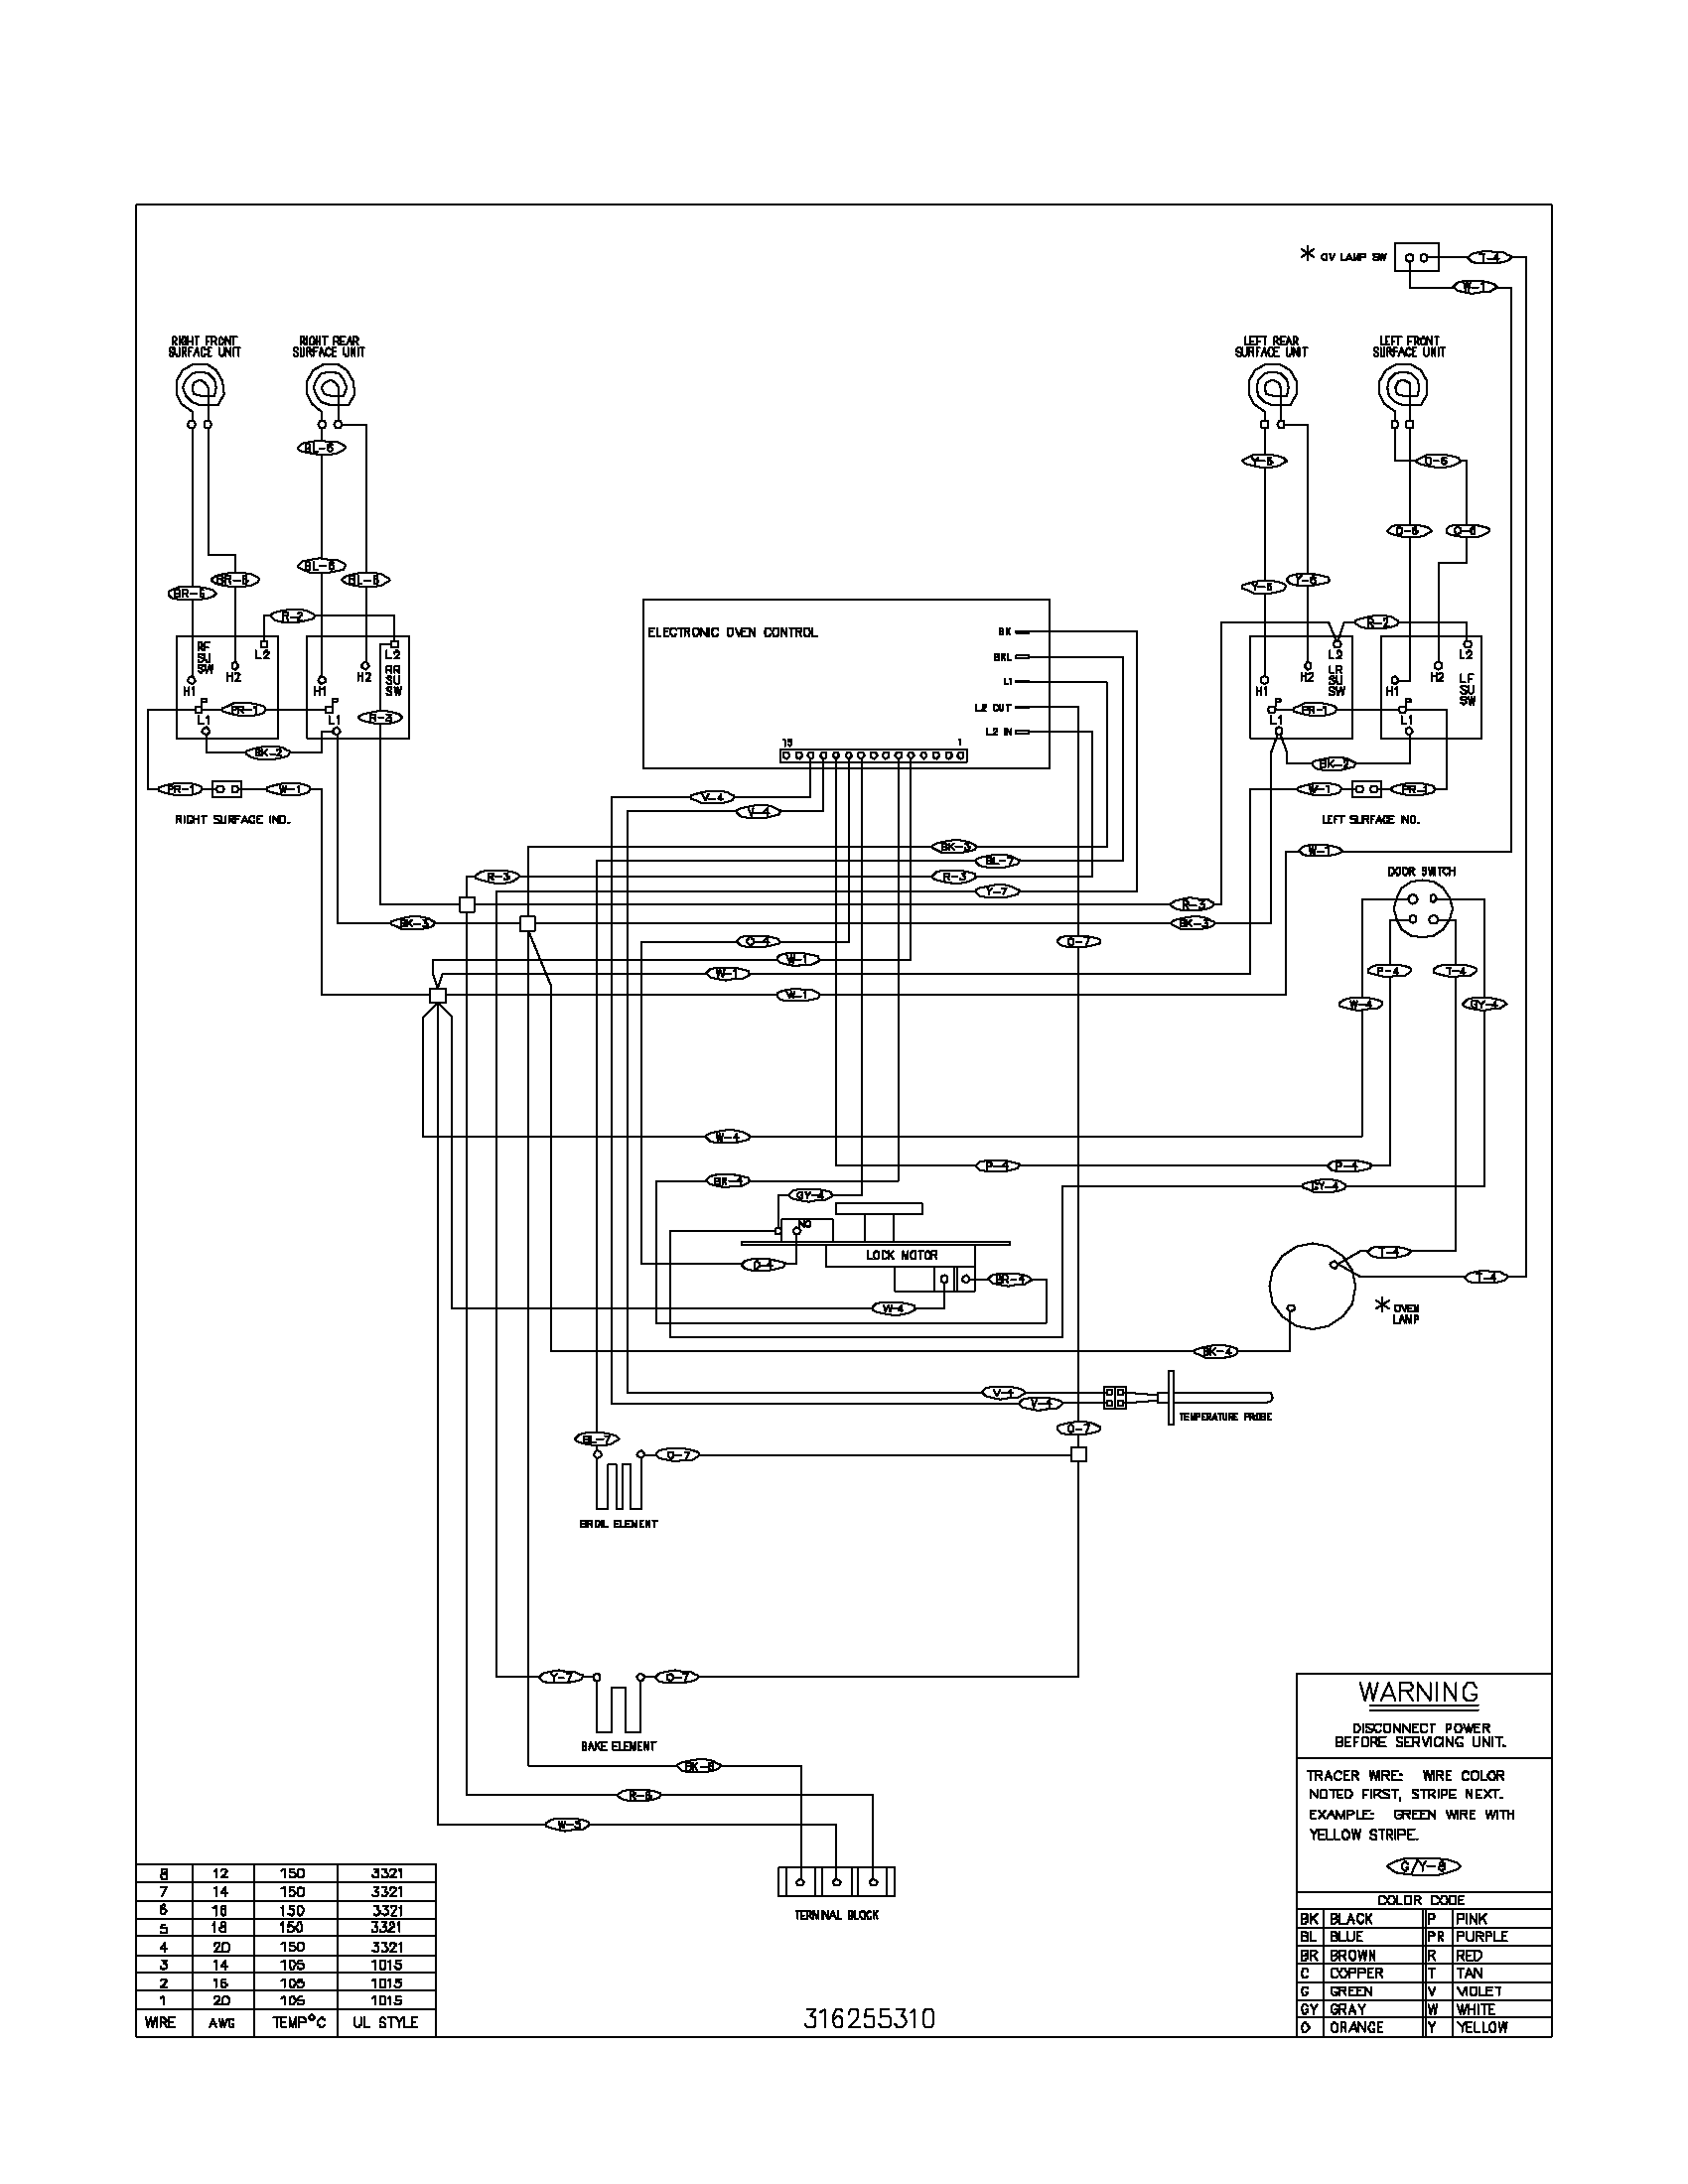 wiring diagram parts frigidaire stove wiring diagram frigidaire washer wiring diagram  at readyjetset.co